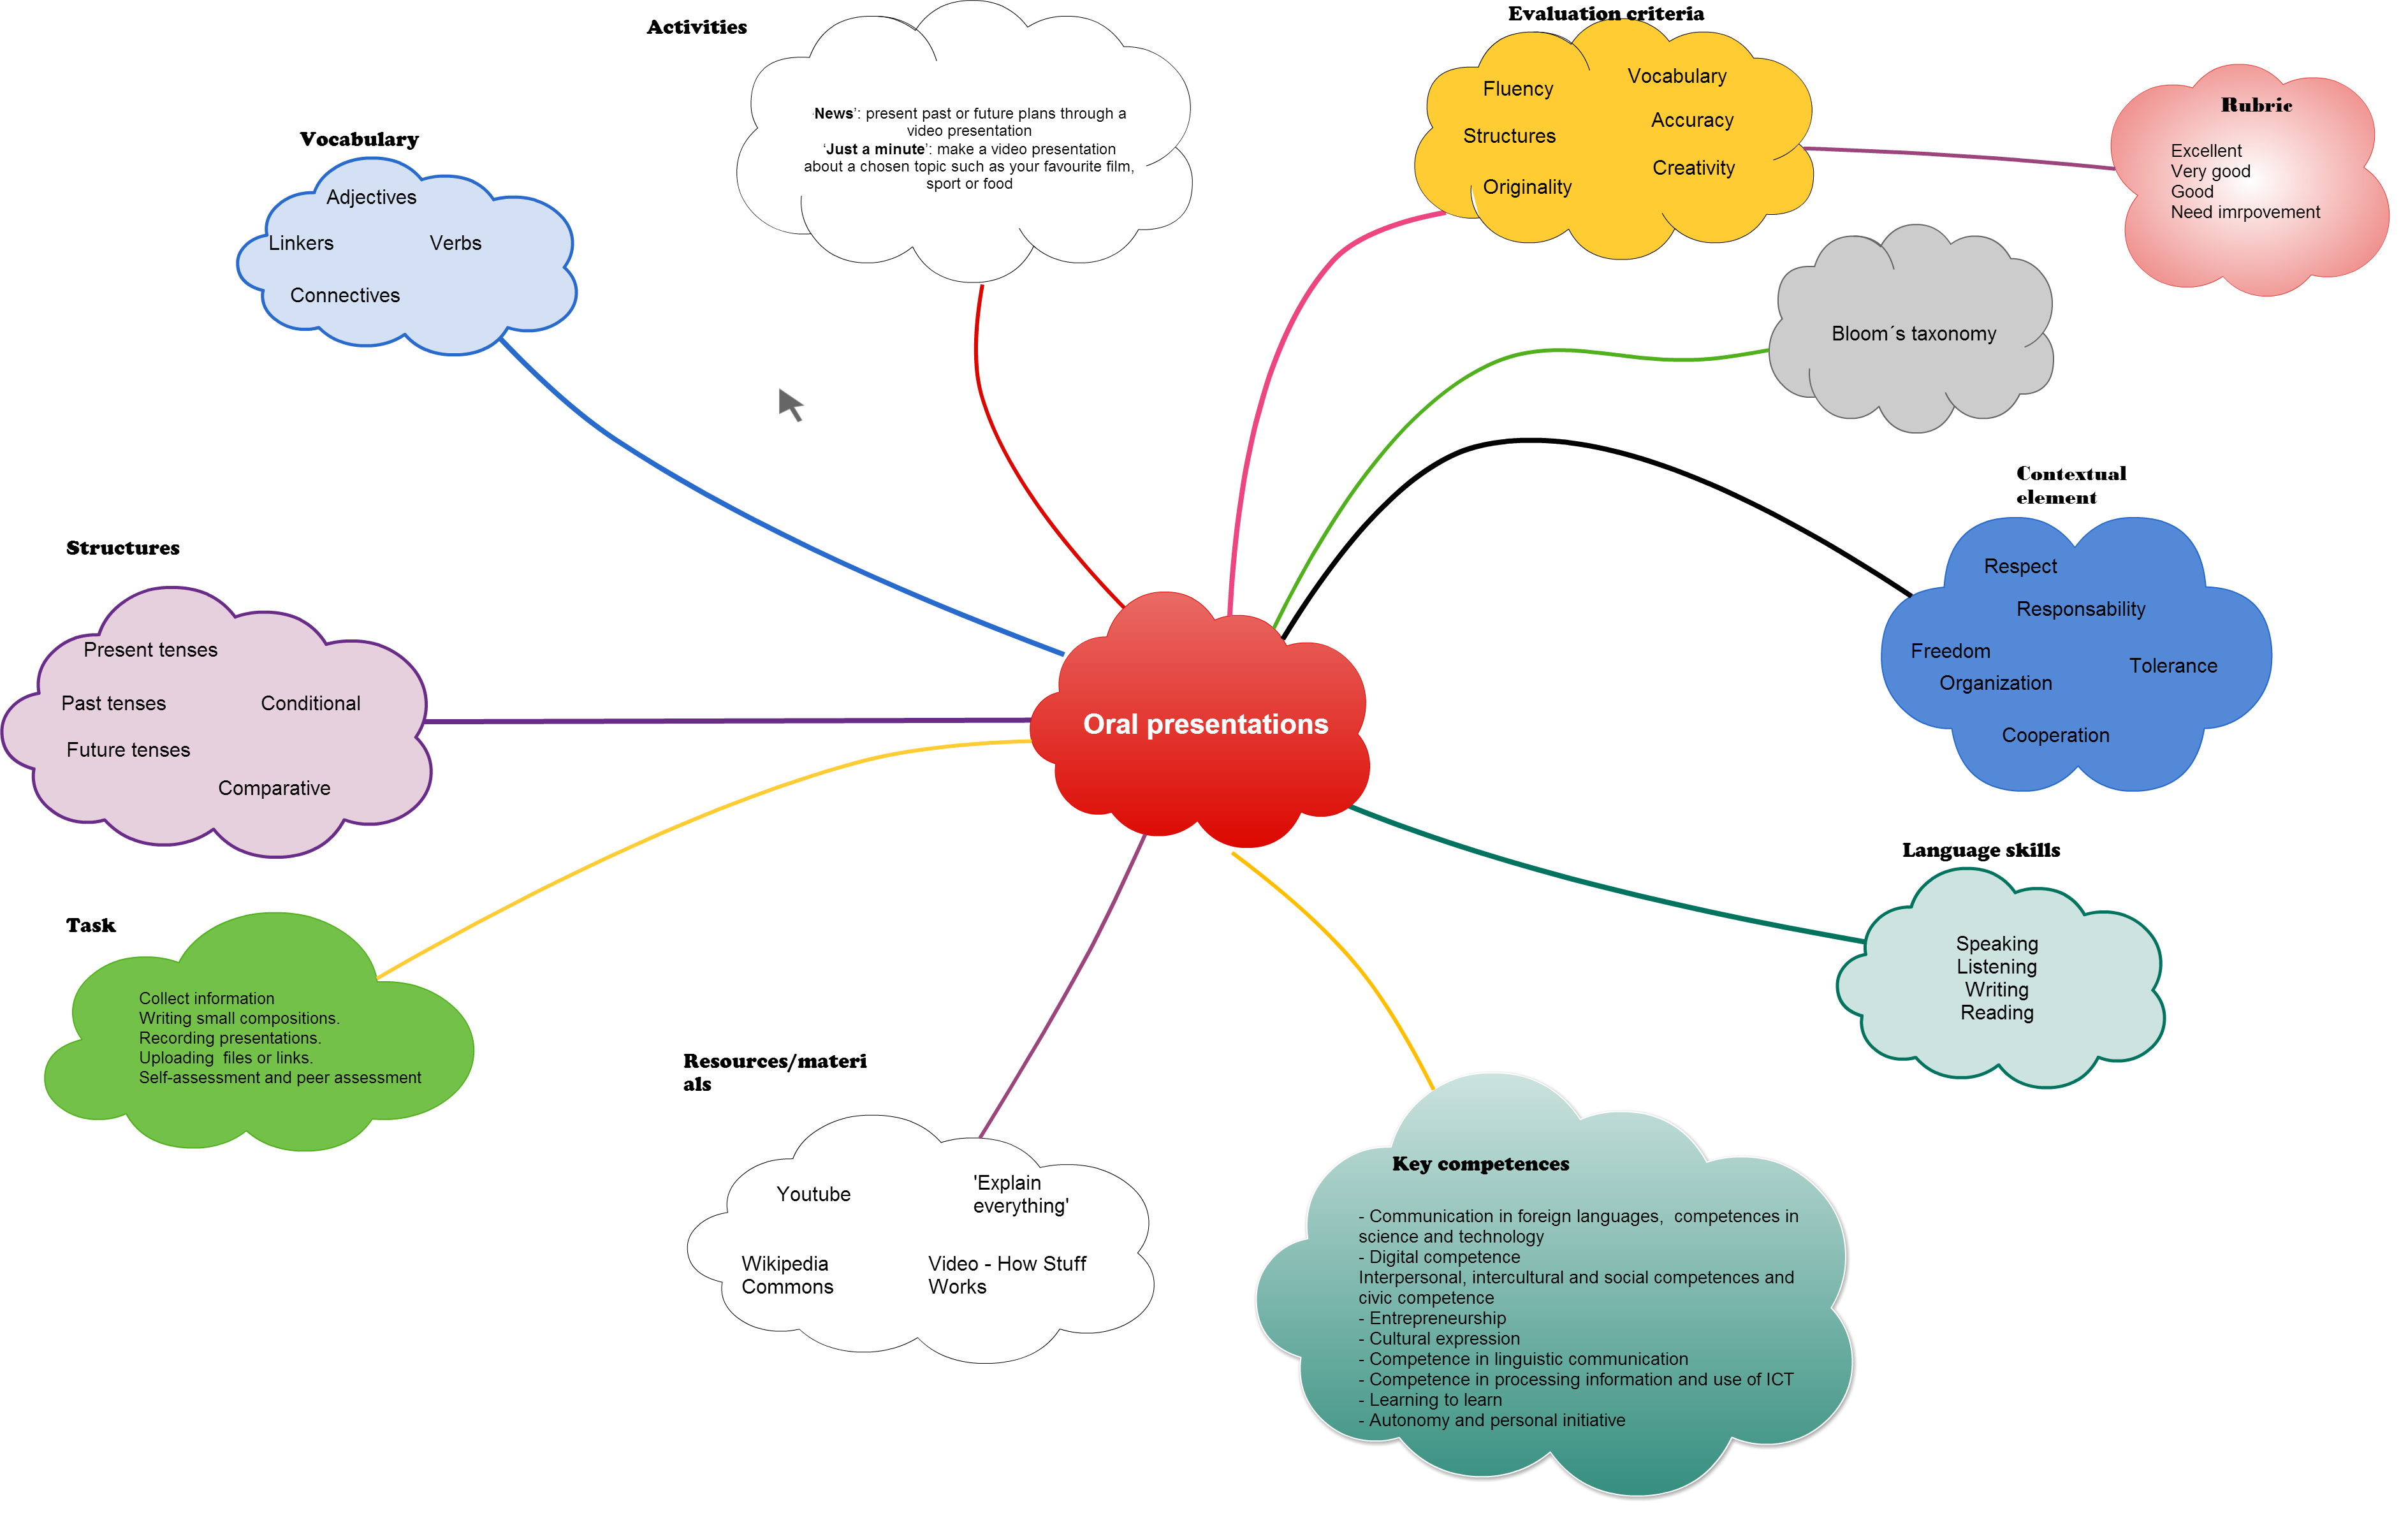 Cacoo Oral Presentations A Mindmap By ManuLopez - Oral map